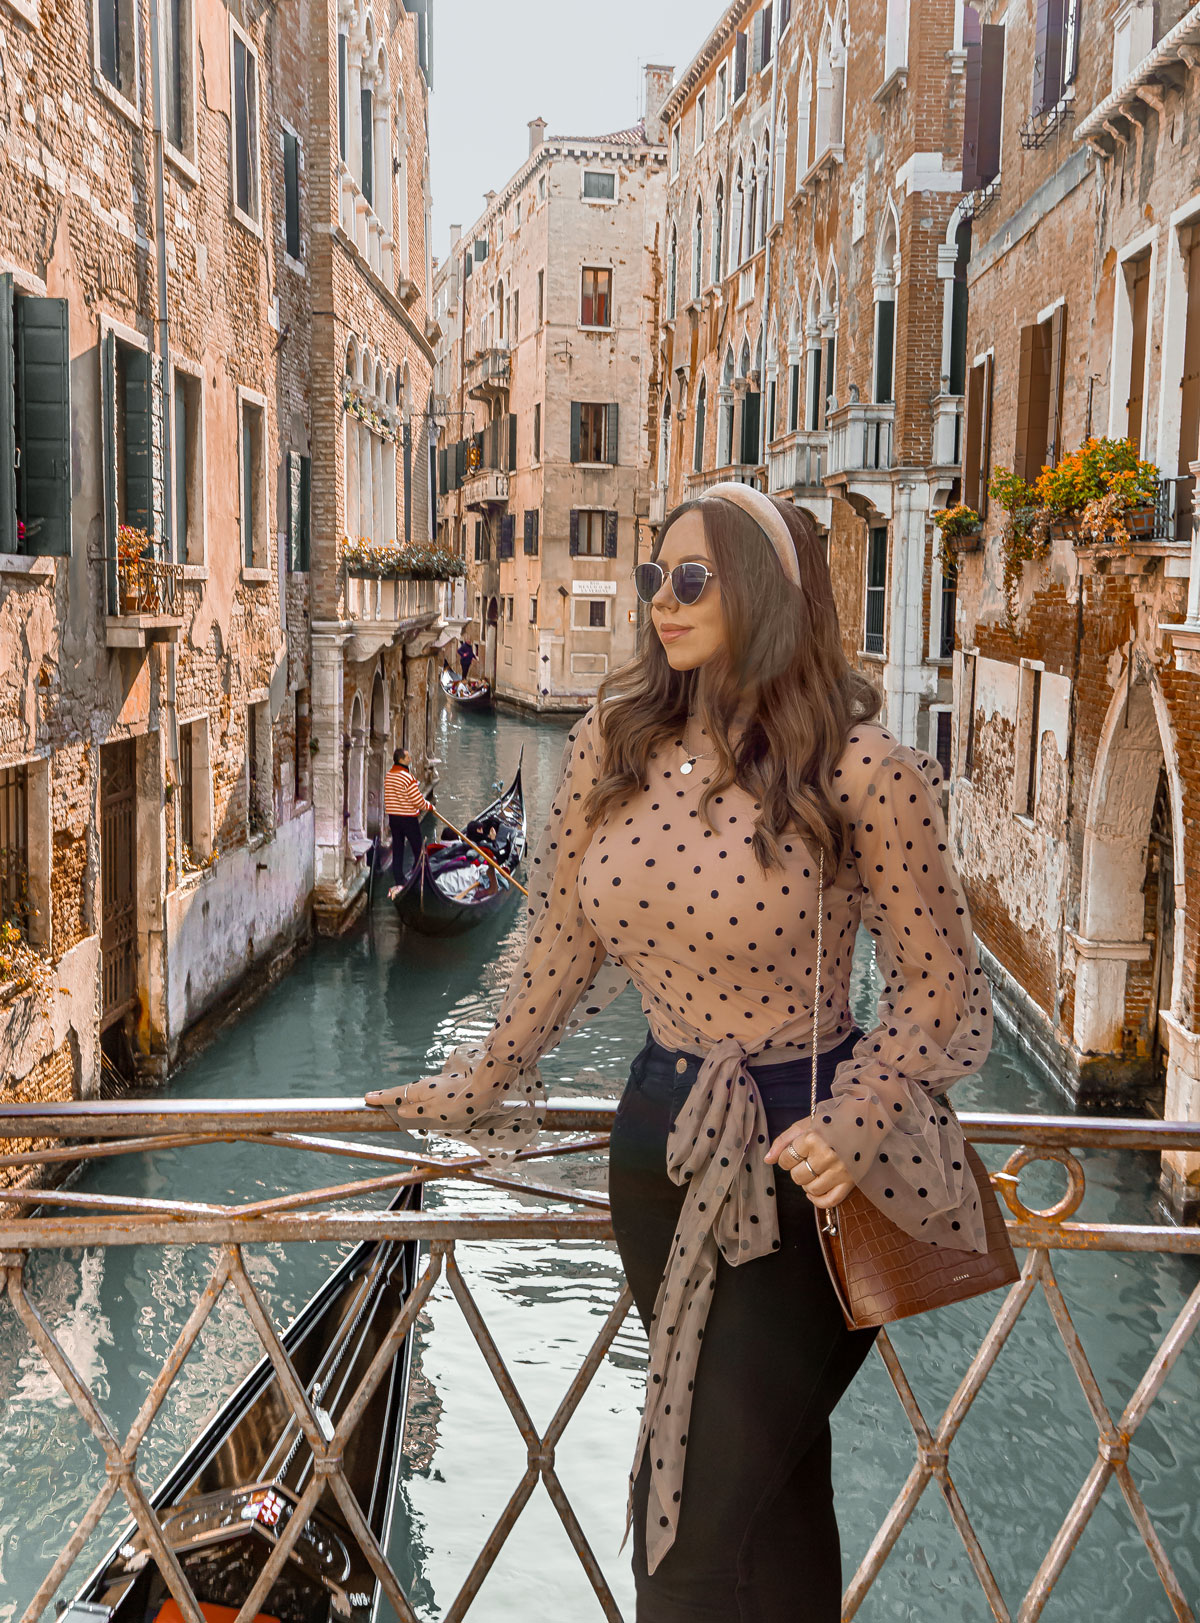 28-top-things-to-do-in-Venice---Venice-Instagram-spots-–-Venice-bucket-list---kelseyinlondon---kelsey-heinrichs---venice-gondola-ride---venice-grand-canal